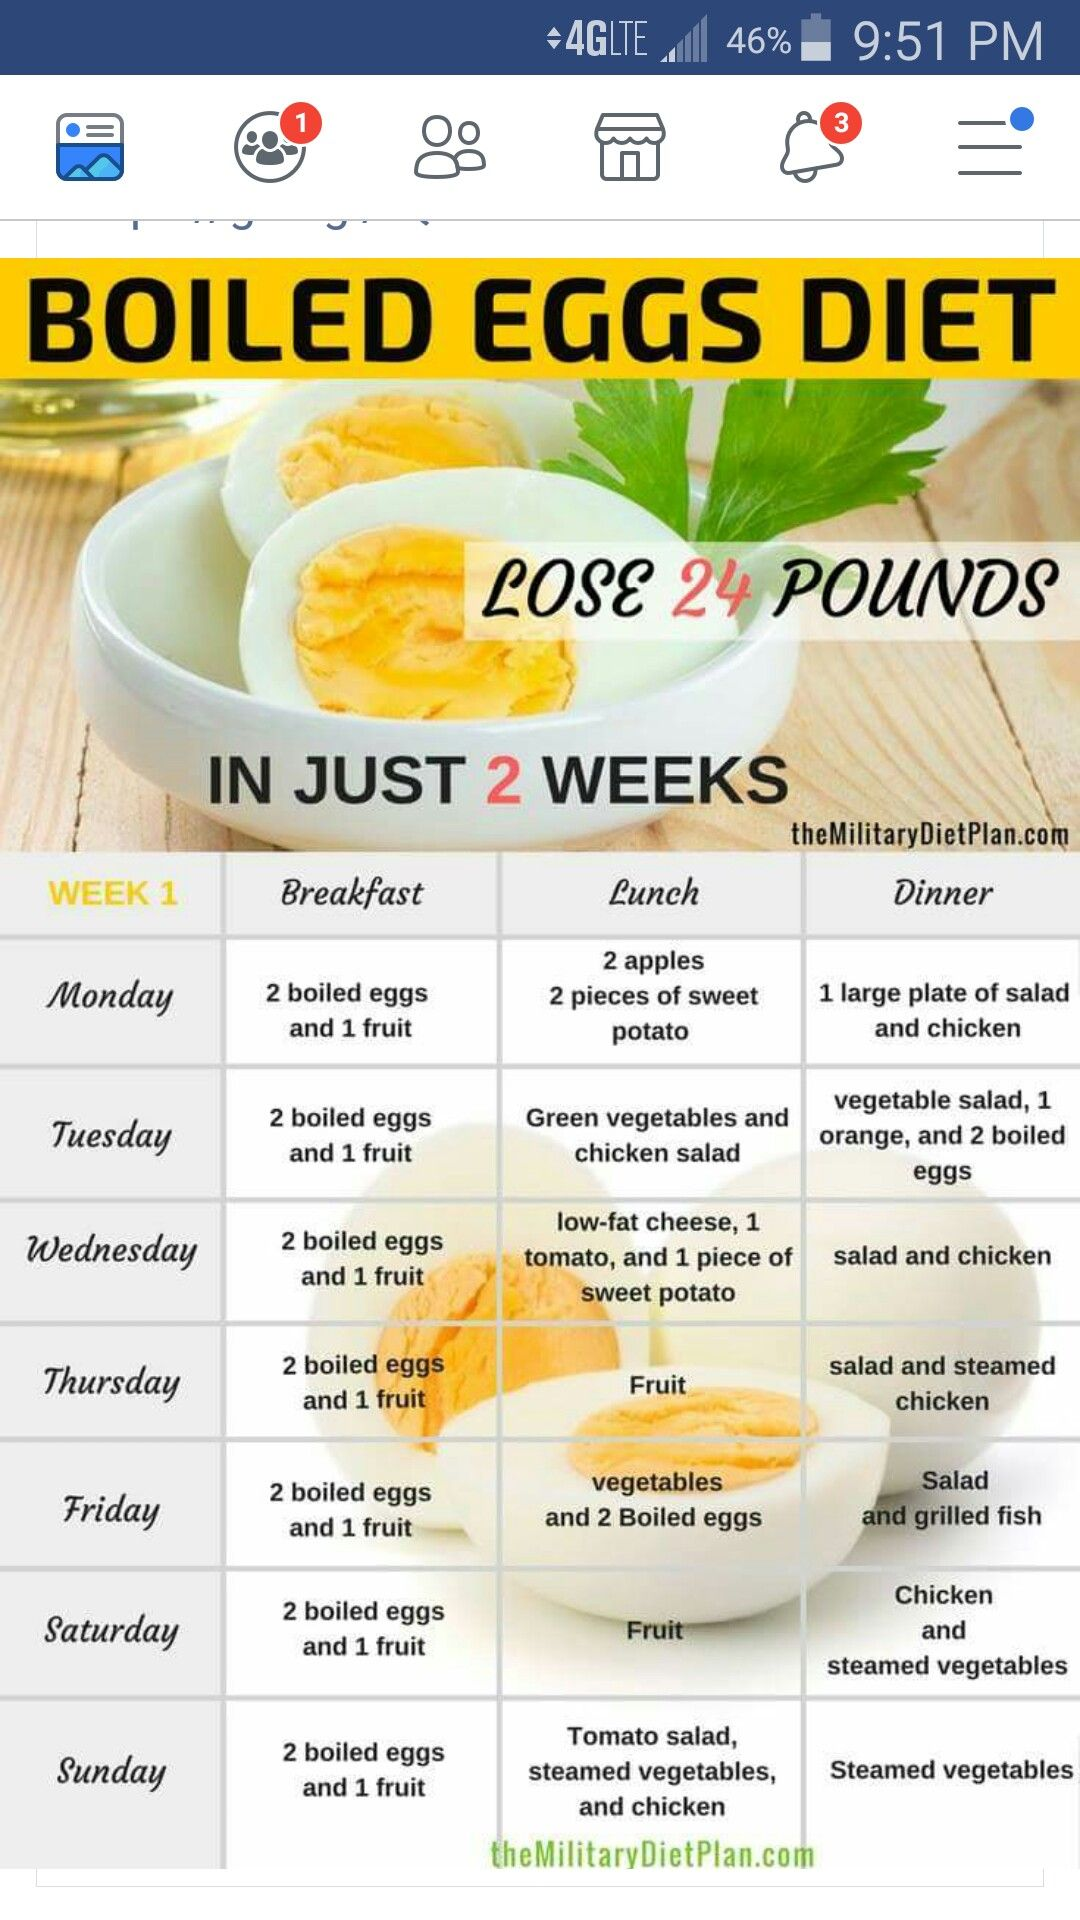 can egg diet help you lsoe weight quickly